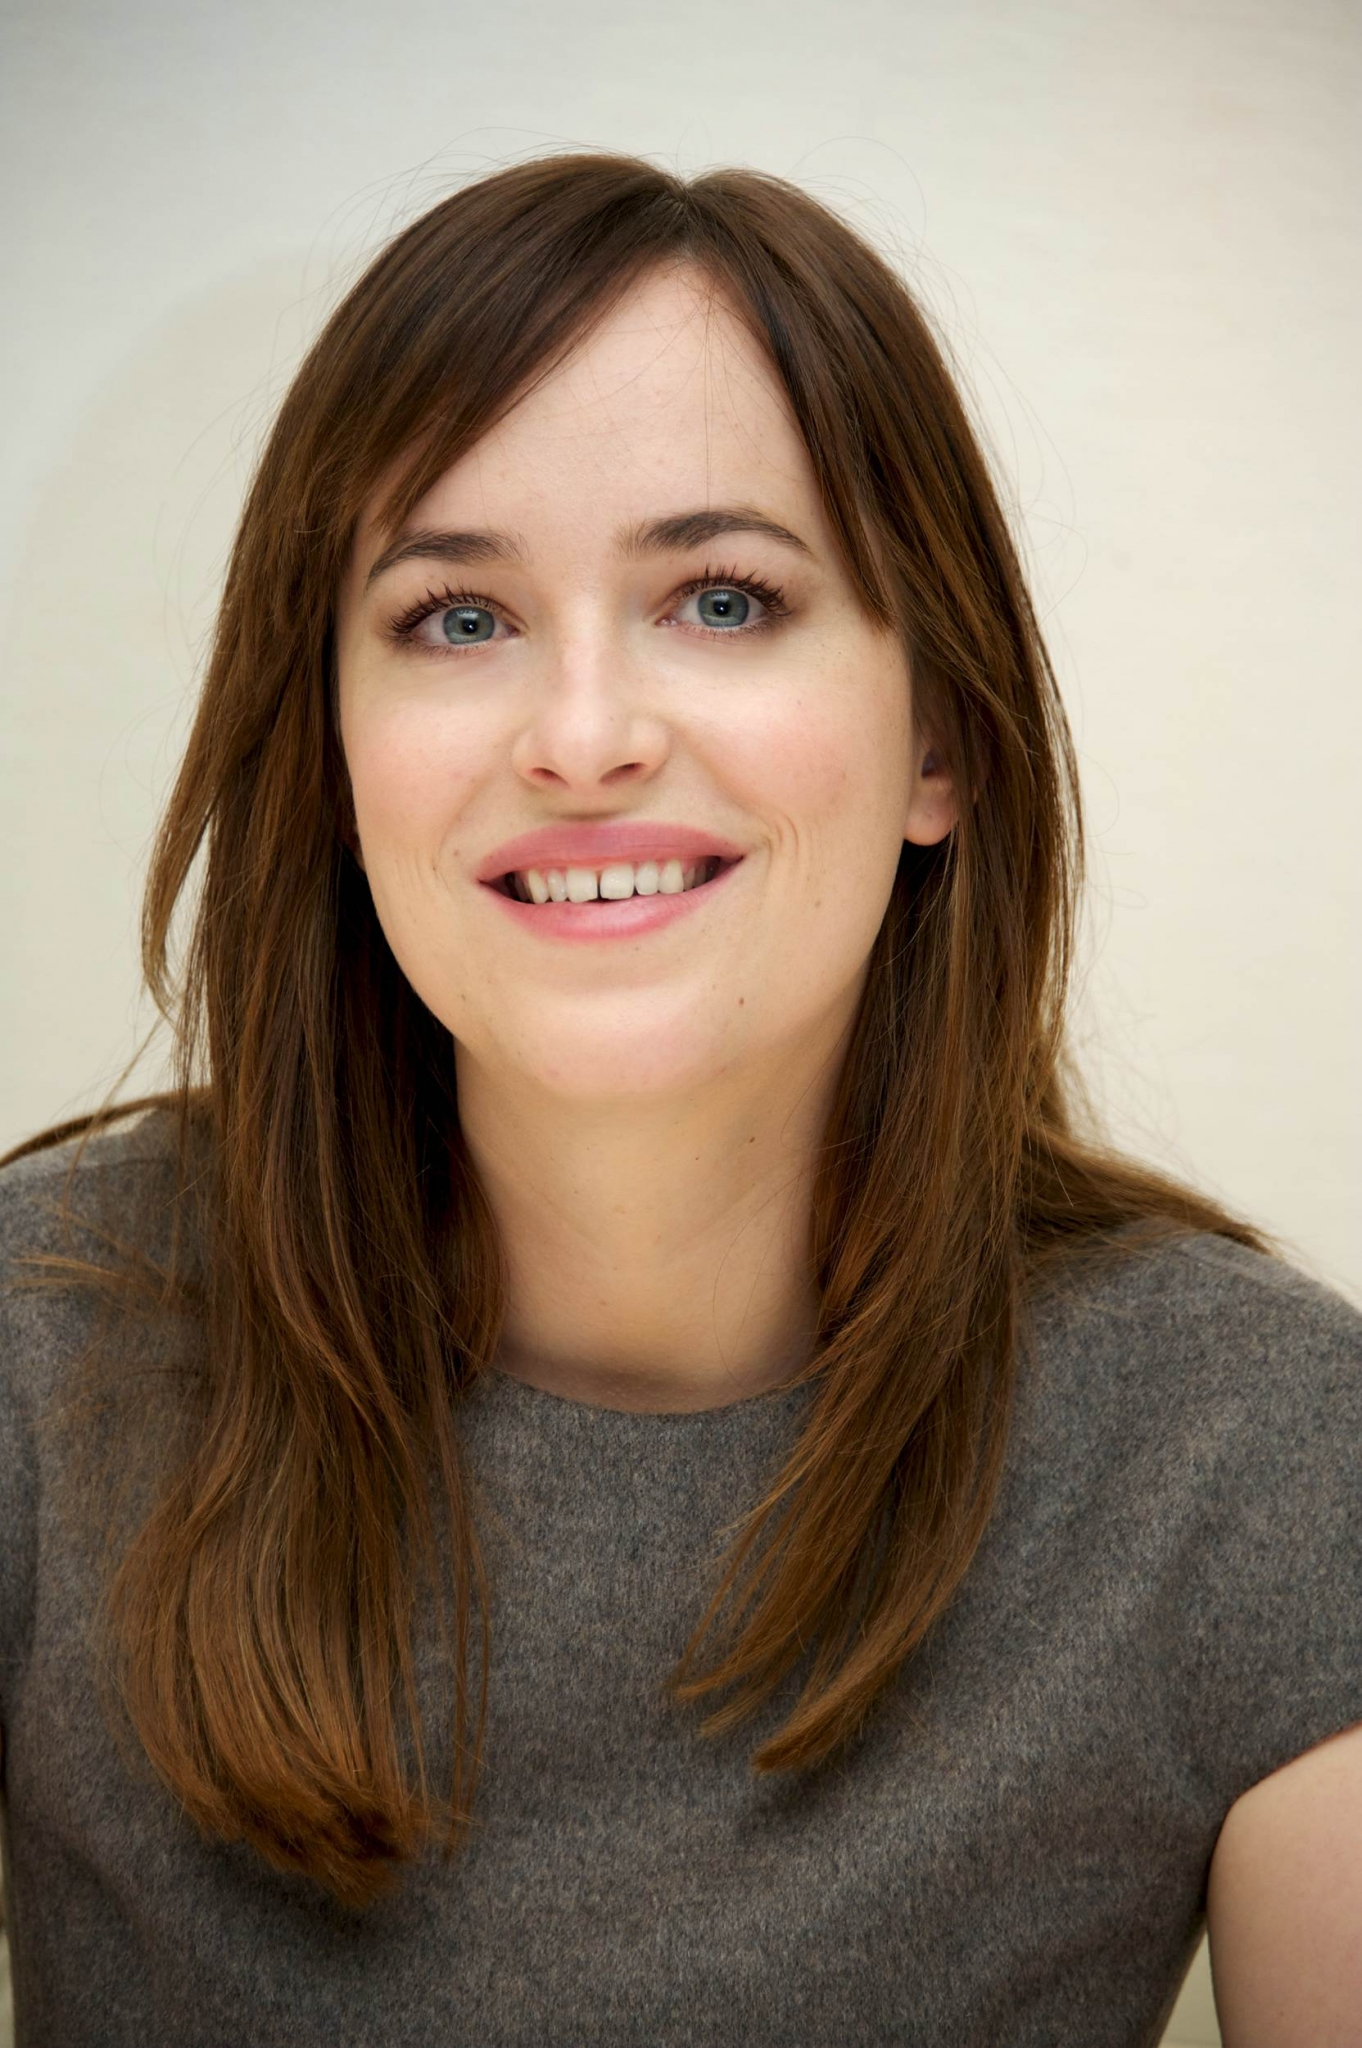 Image Result For Dakota Johnson Imdb